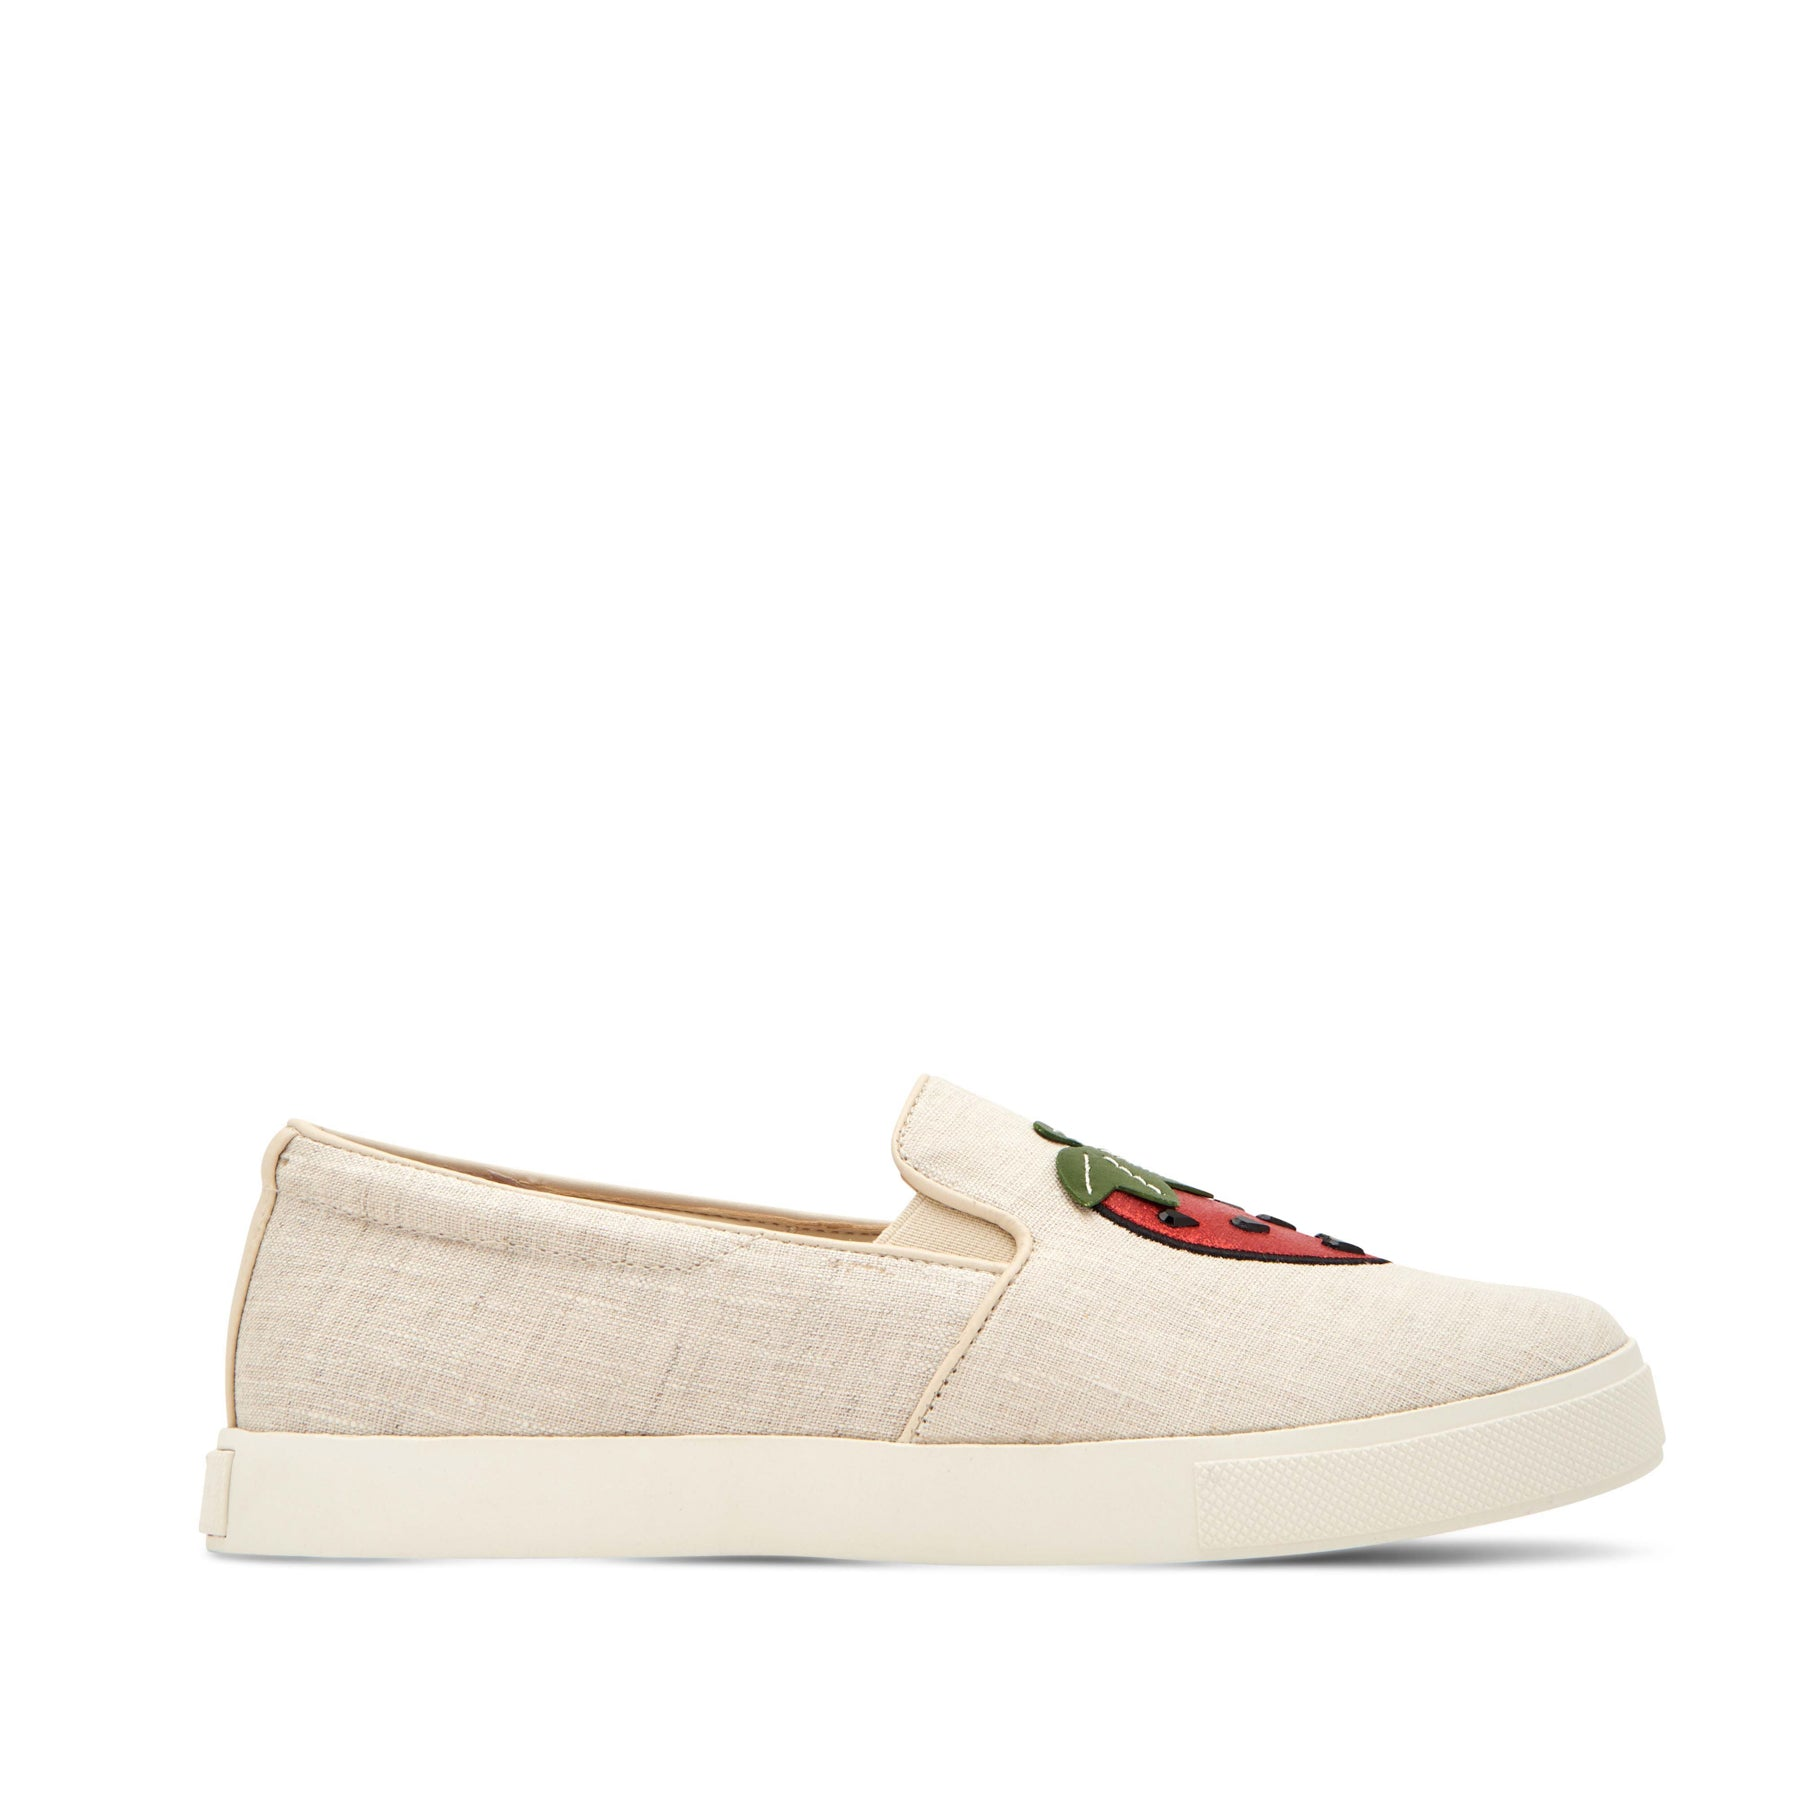 katy perry slip-on sneaker in strawberry size 5.5 | the kerry